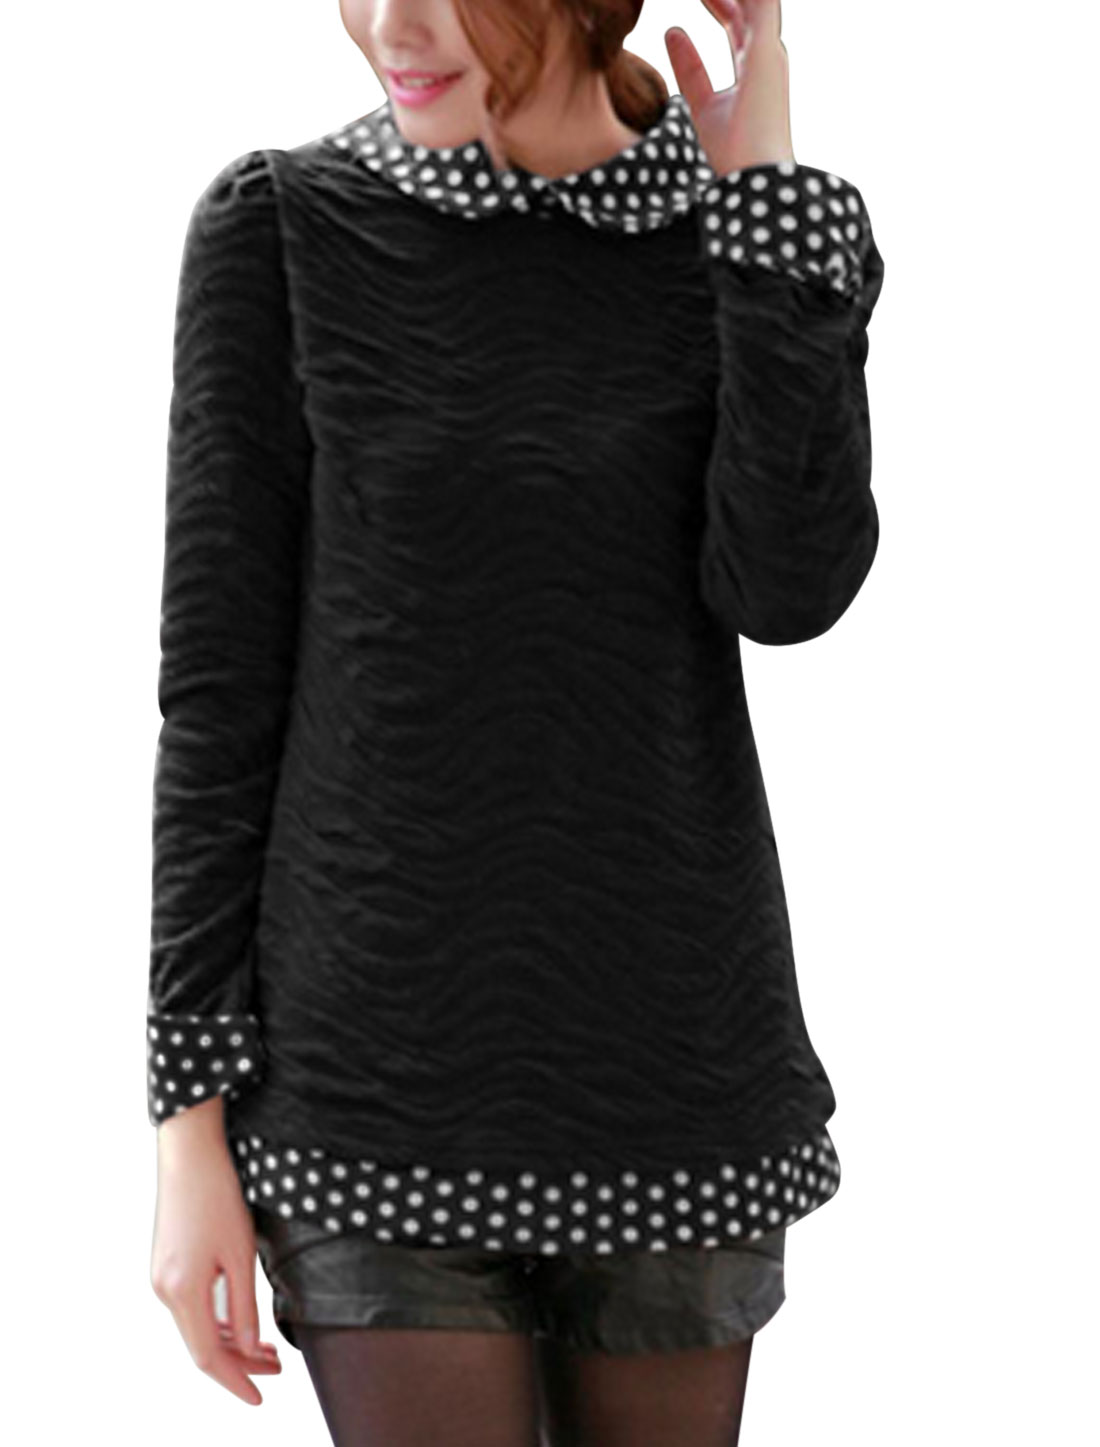 Ladies Black Peter Pan Collar Long Sleeves Splice Slim Fit Casual Top XS